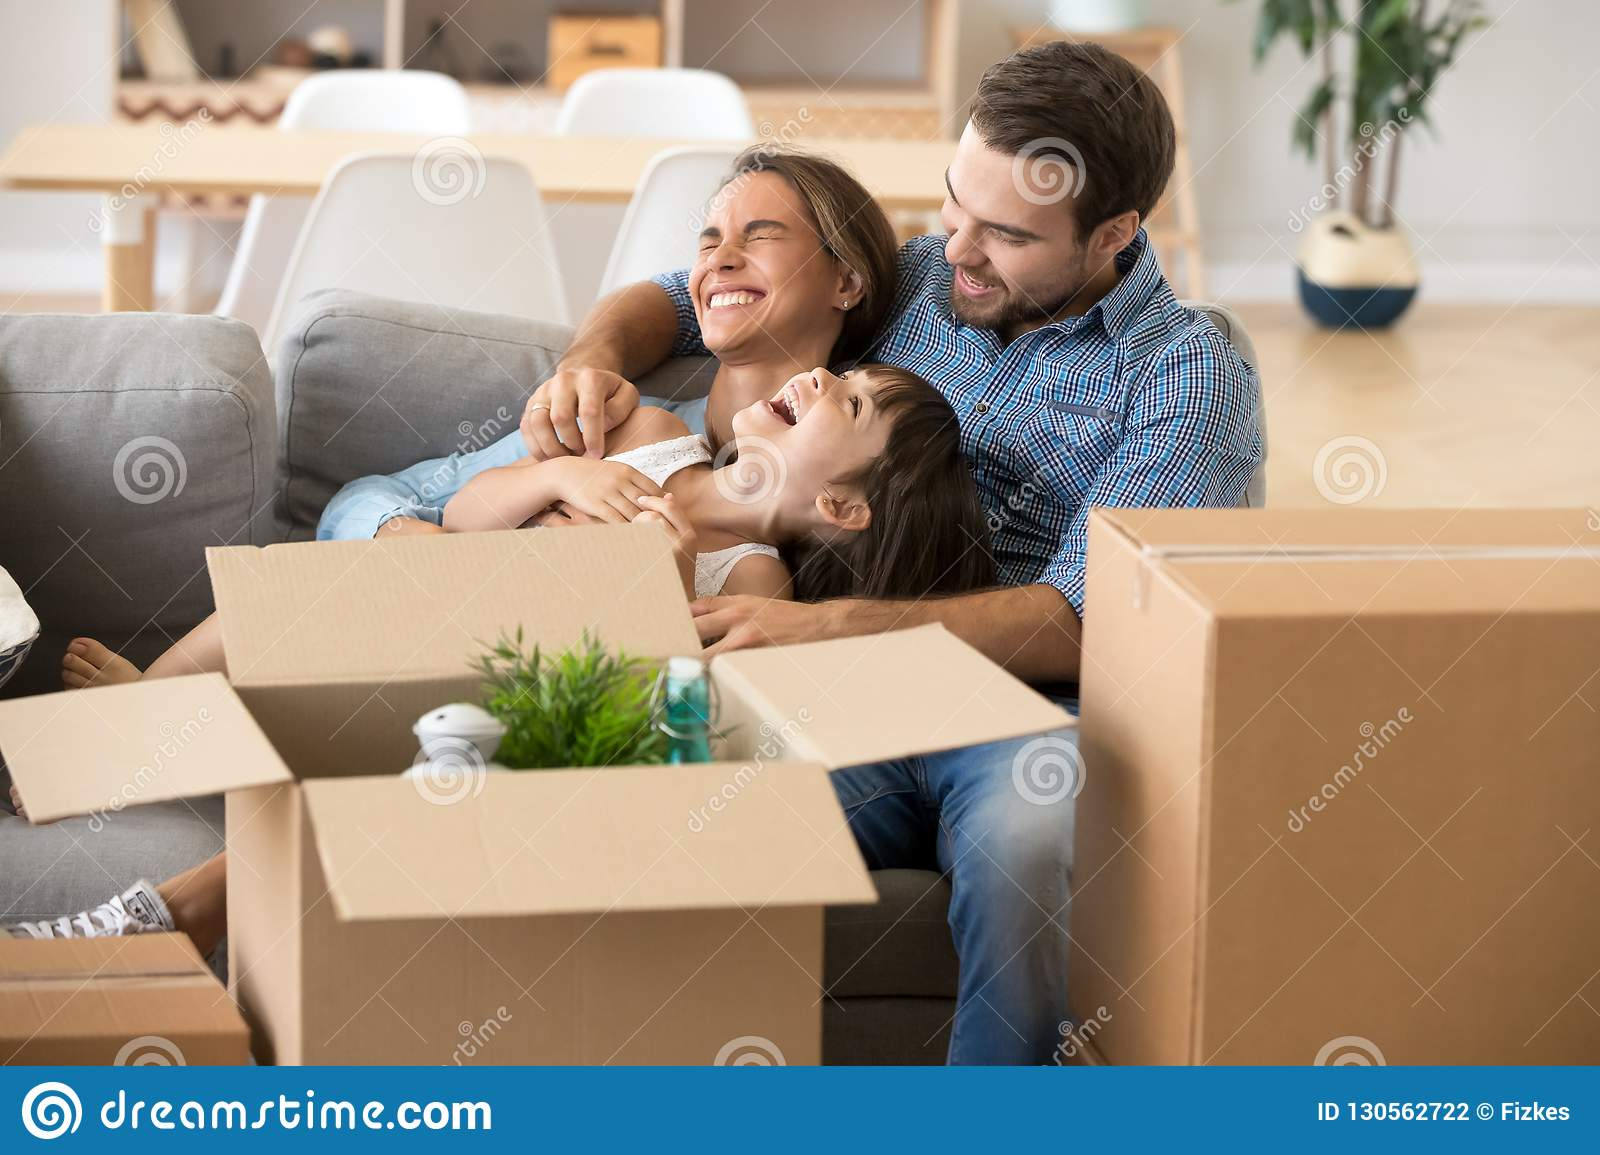 Laughing family spend time having fun at new home